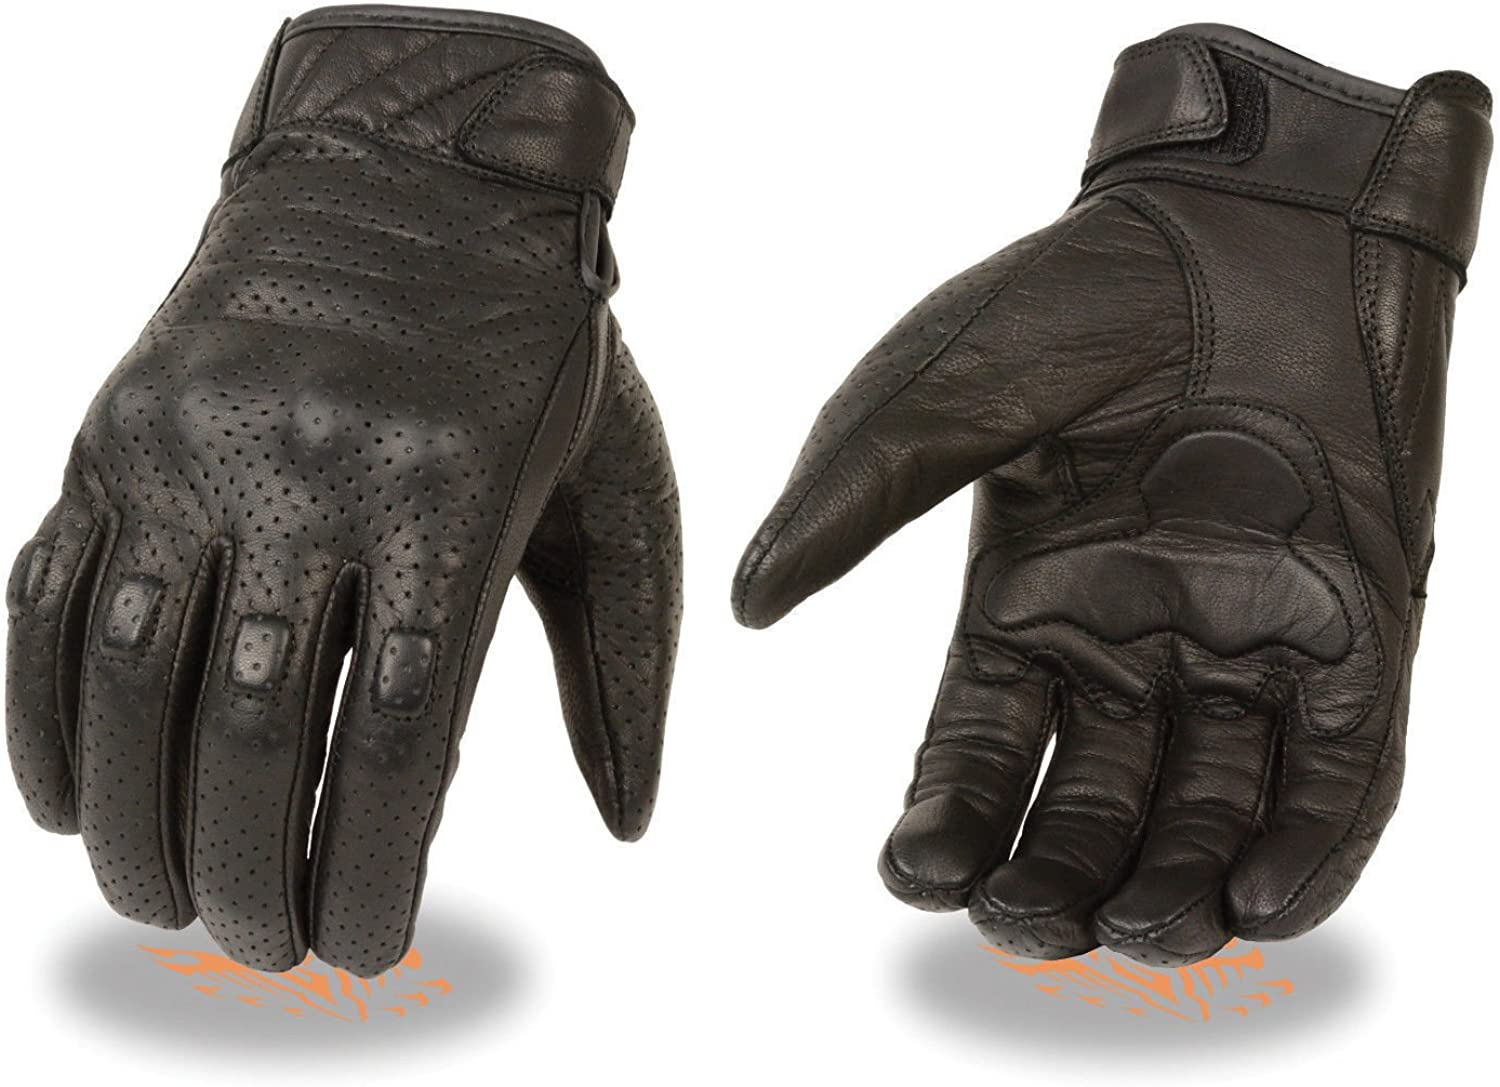 MENS MOTORCYCLE BUTTER SOFT PERFORATED CRUISER LEATHER GLOVES W//GEL PALM SOFT